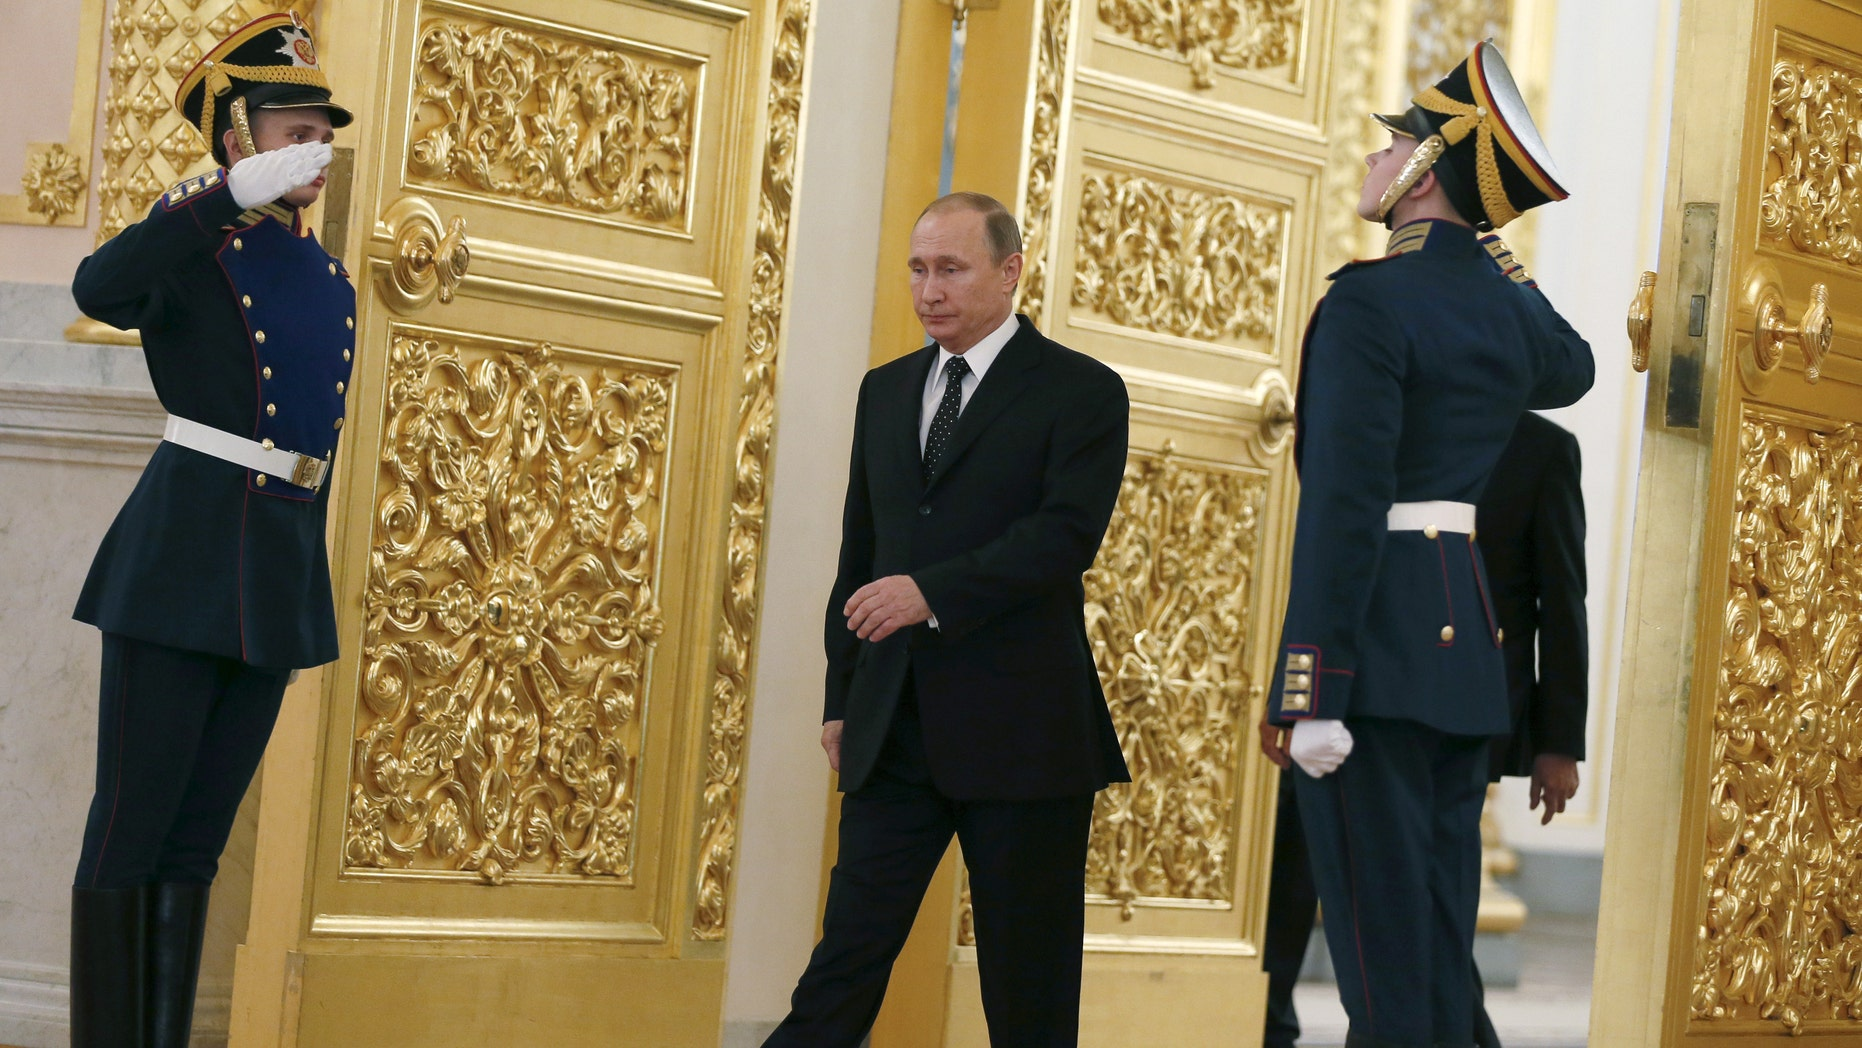 Russia's President Vladimir Putin walks past honor guards as he attends a ceremony to receive diplomatic credentials from foreign ambassadors at the Kremlin in Moscow, Russia, November 26, 2015. (REUTERS/Sergei Ilnitsky/Pool)